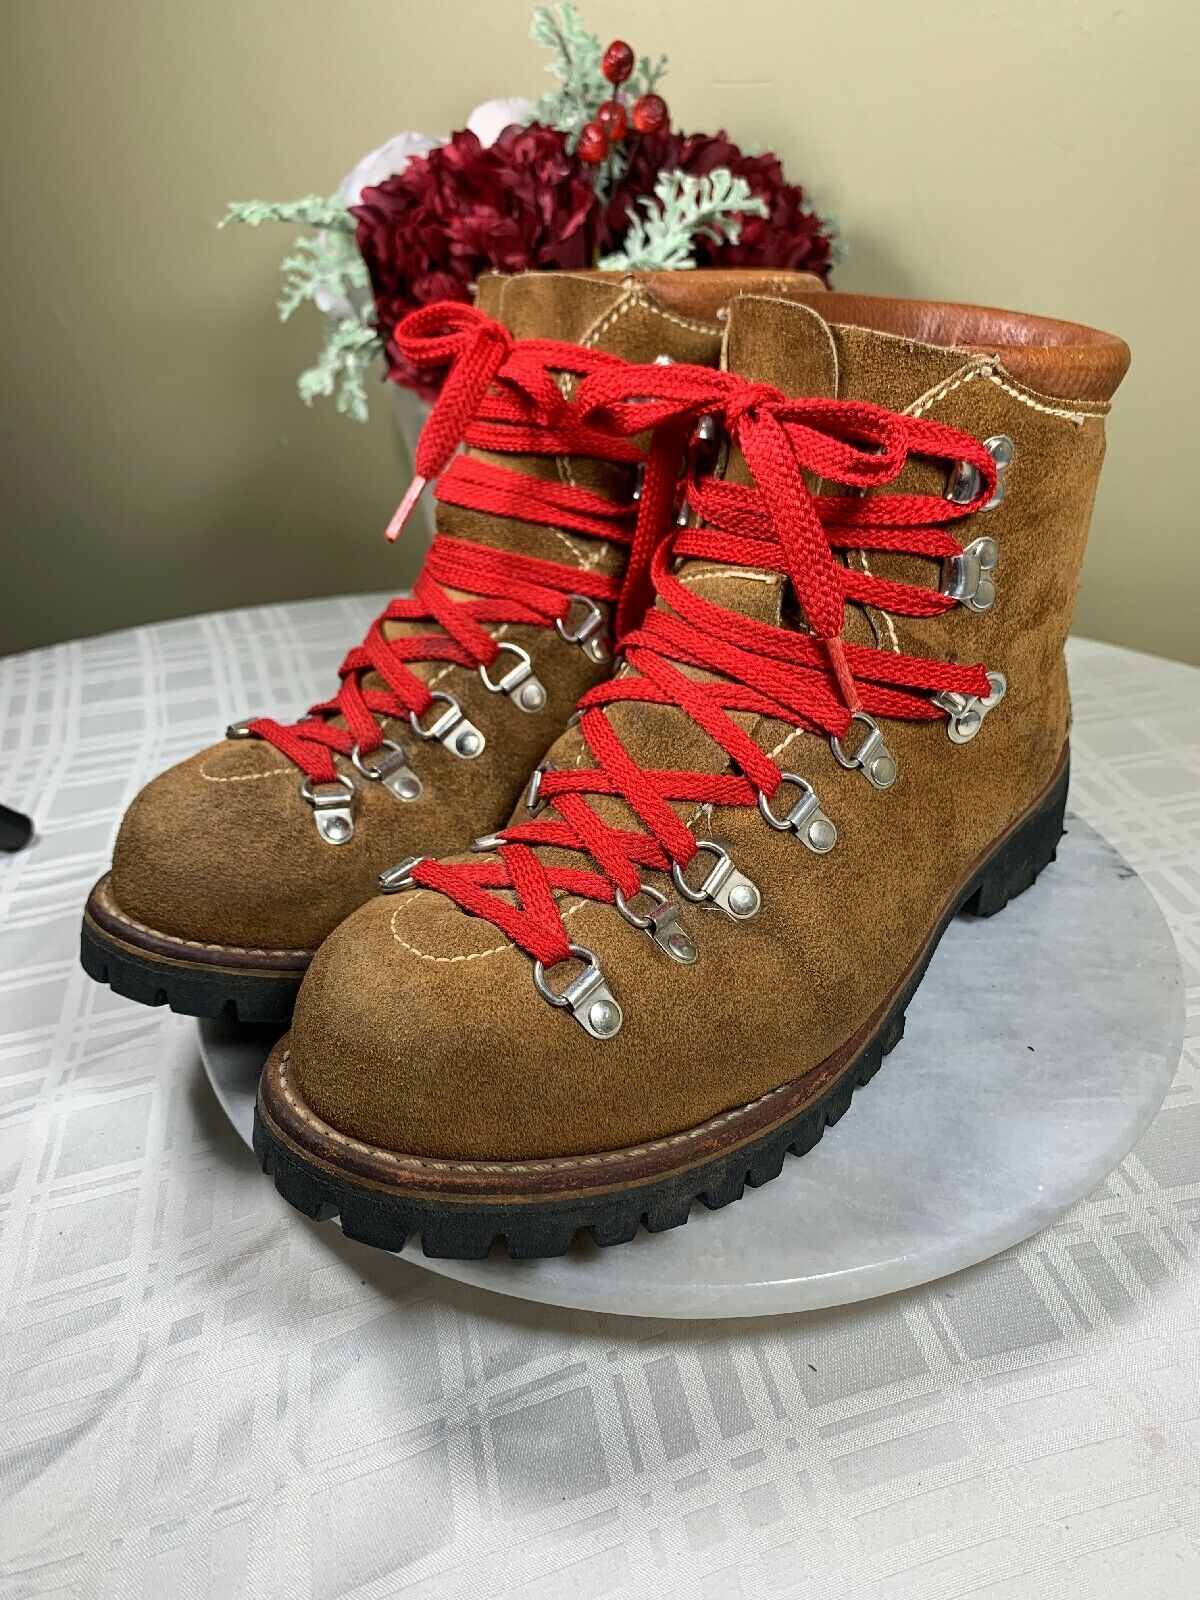 GREAT HIKING SAND TAN SUEDE BOOTS VIBRAM SOLES MEN'S  SIZE US 8 WOMEN'S 9 9.5 M  promotions